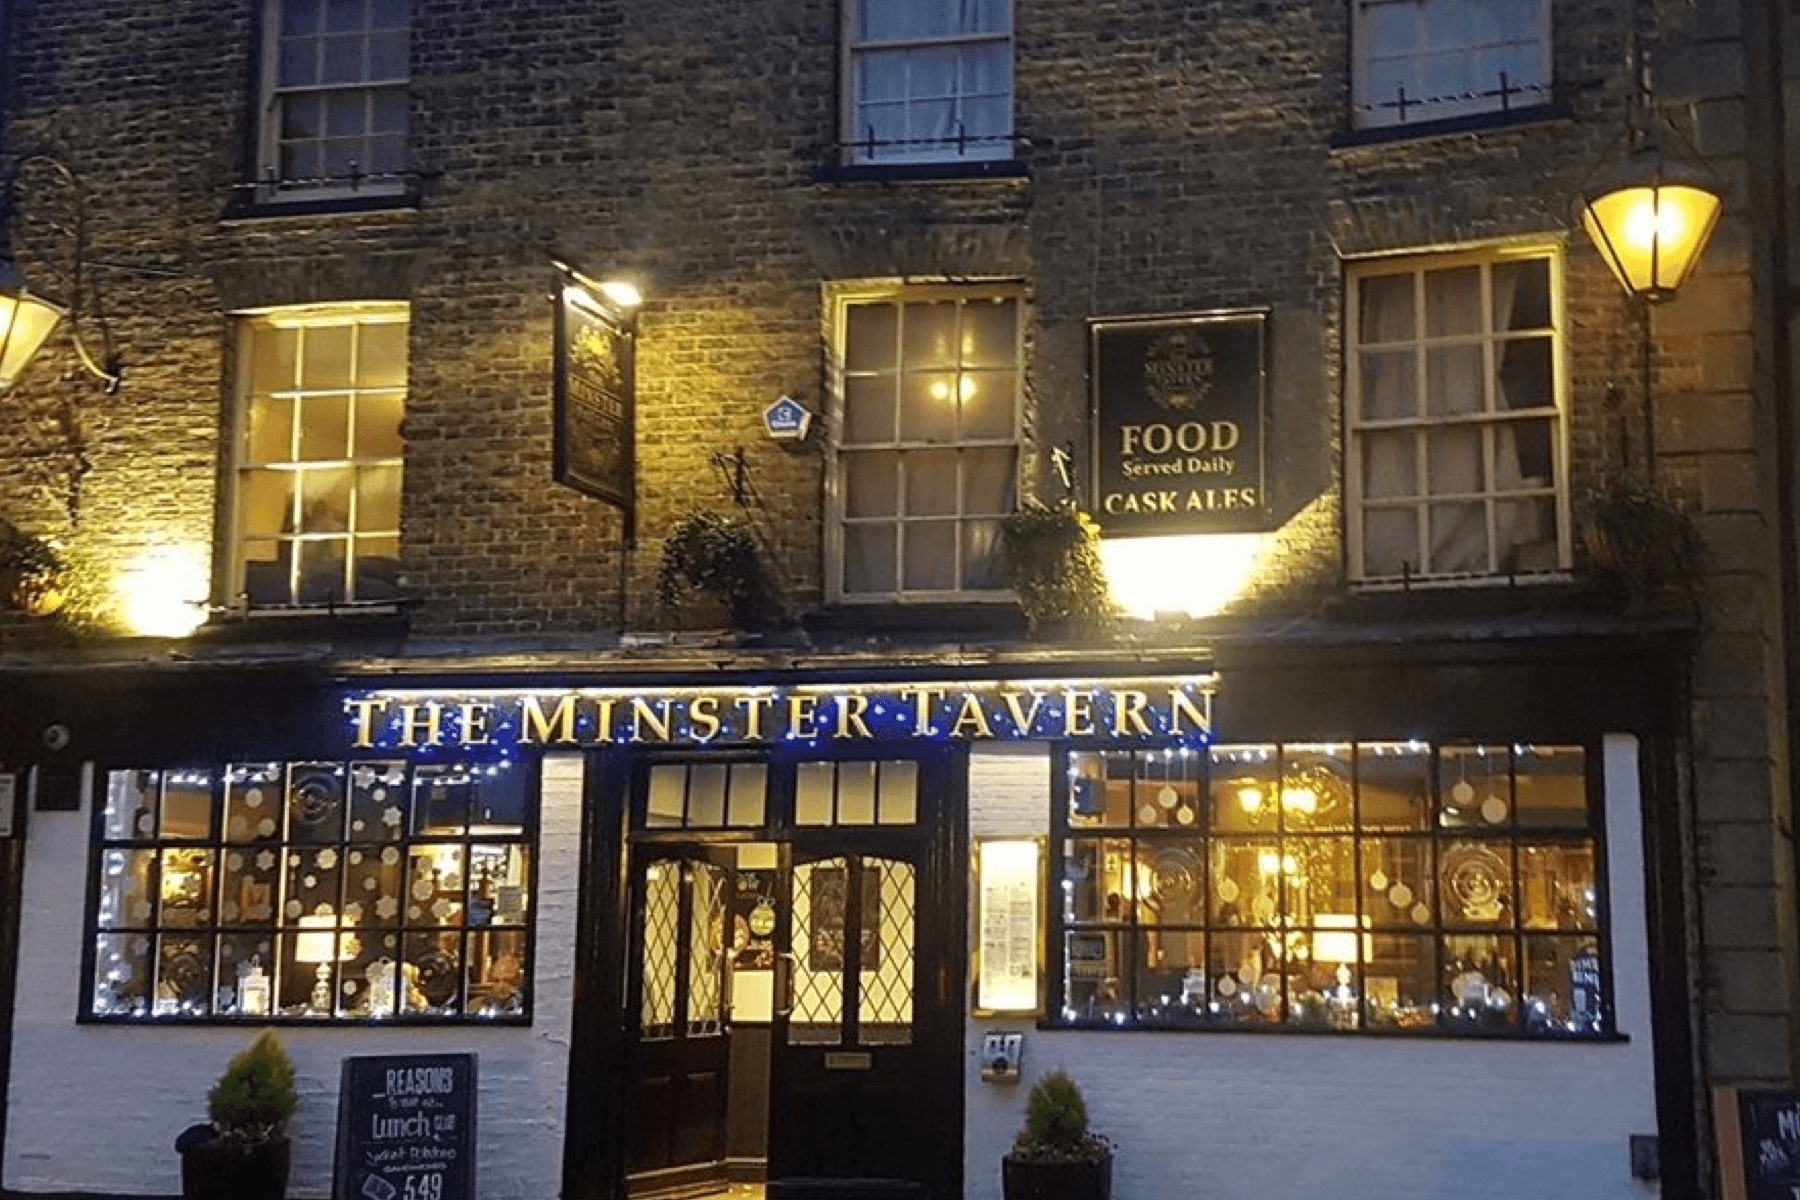 The Minster Tavern